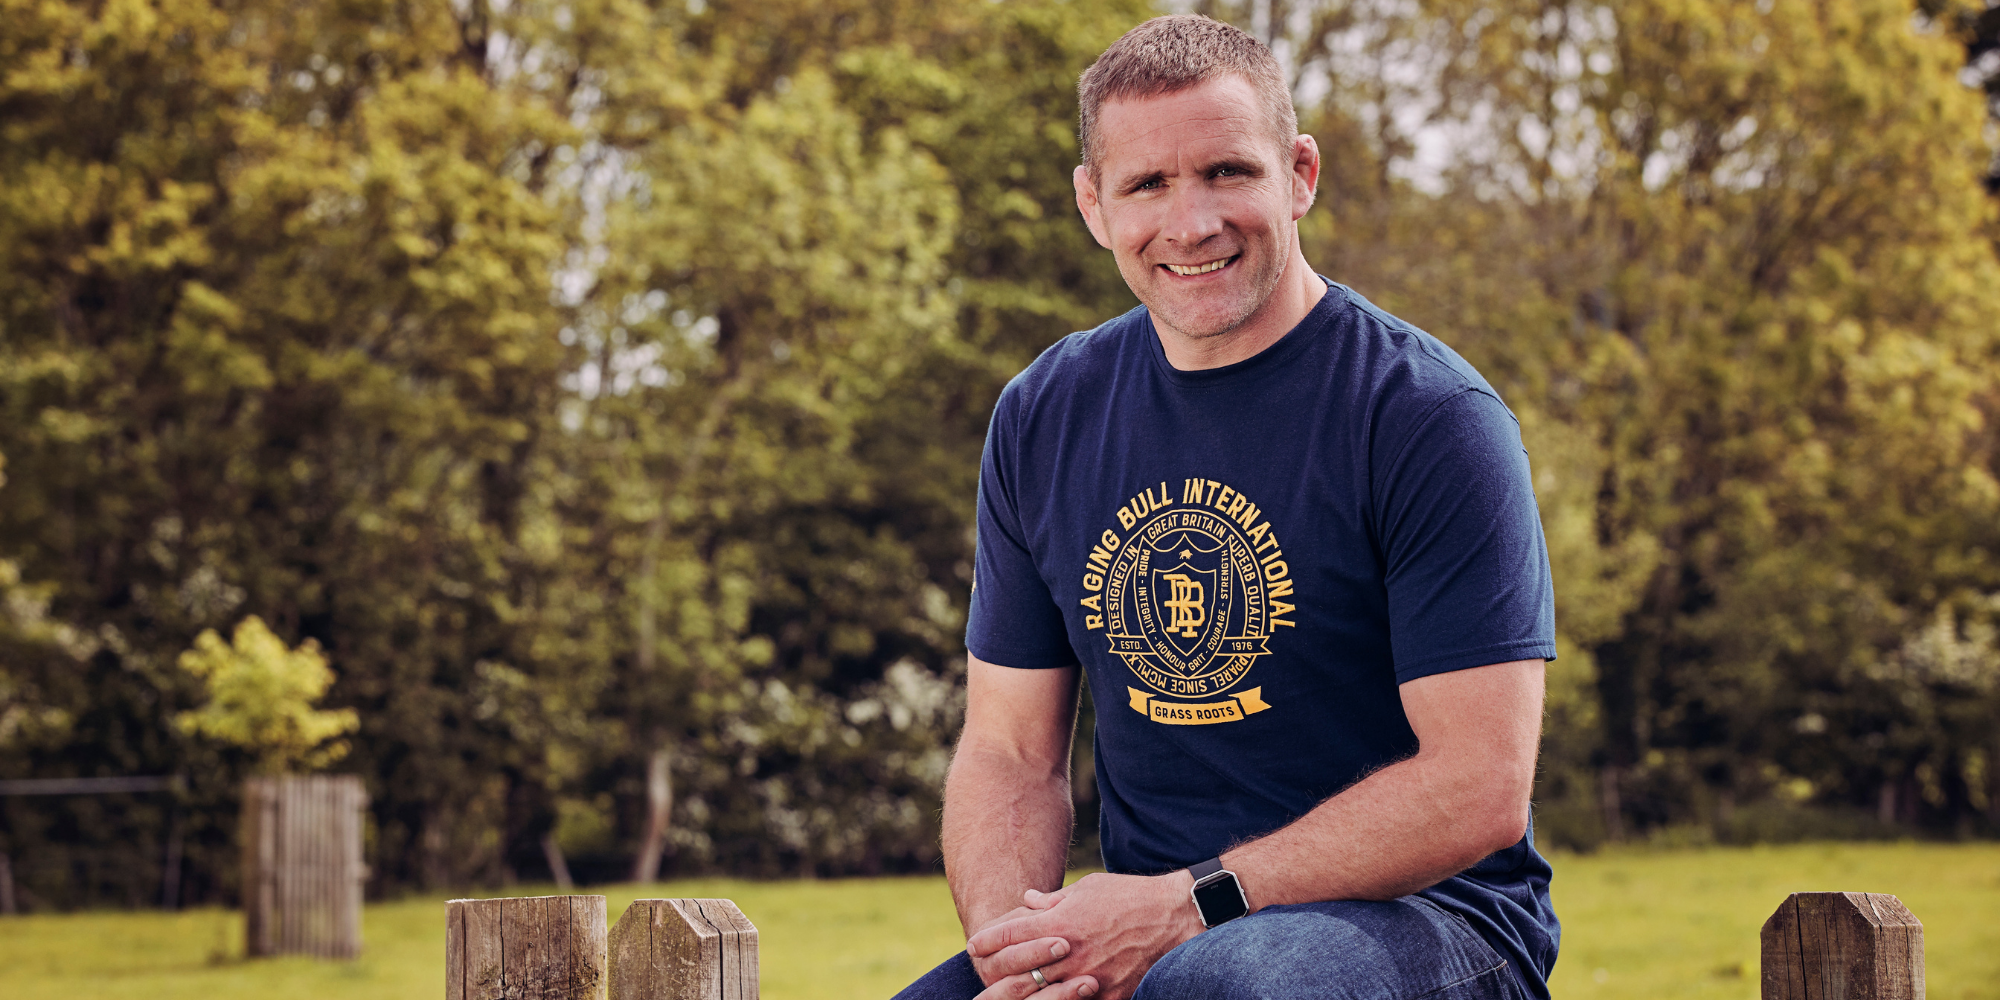 An Entertaining Audience with Phil Vickery MBE